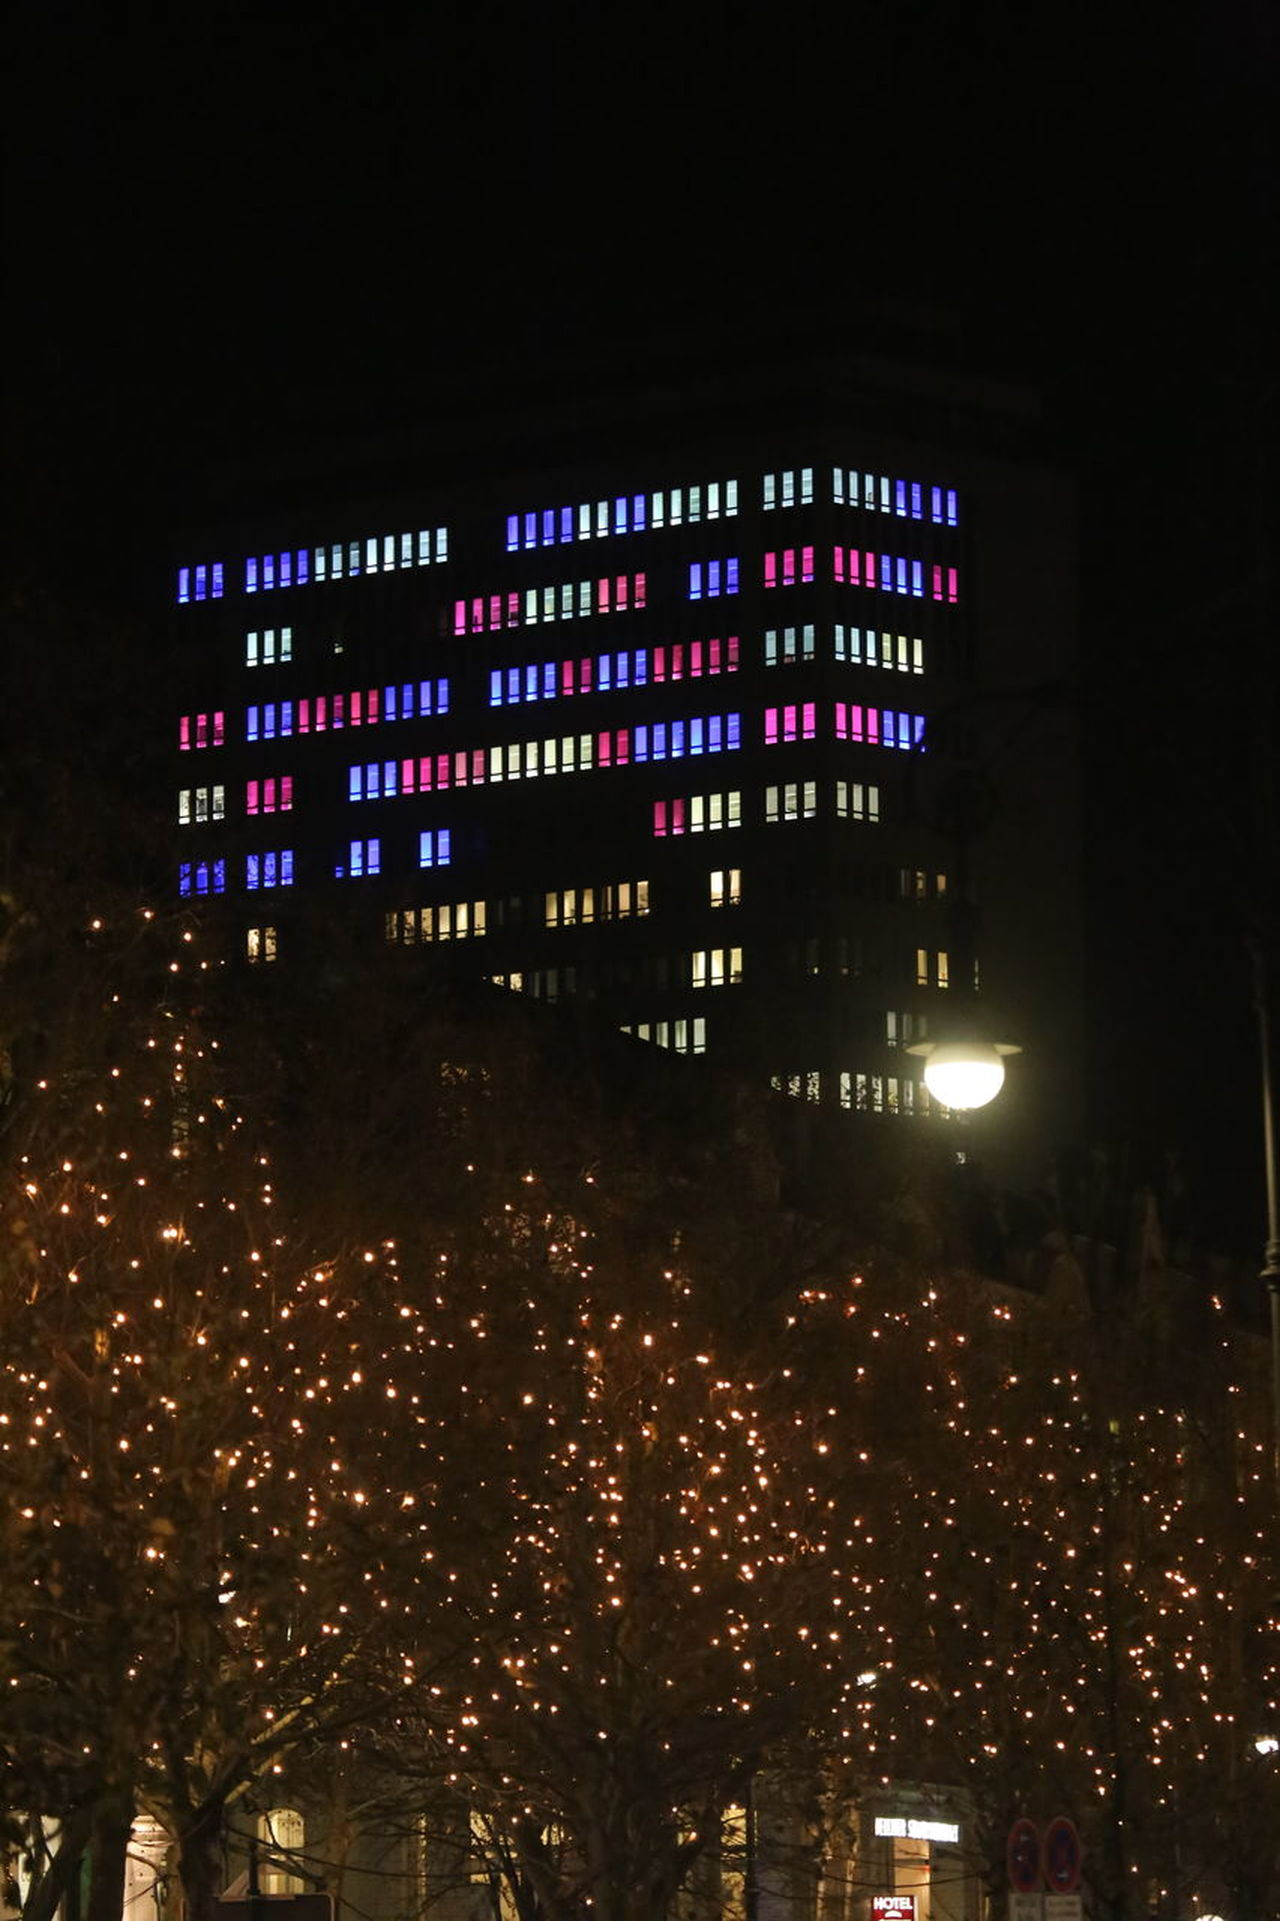 Architecture Building Exterior City Colorful Illuminated Night No People Outdoors Windows